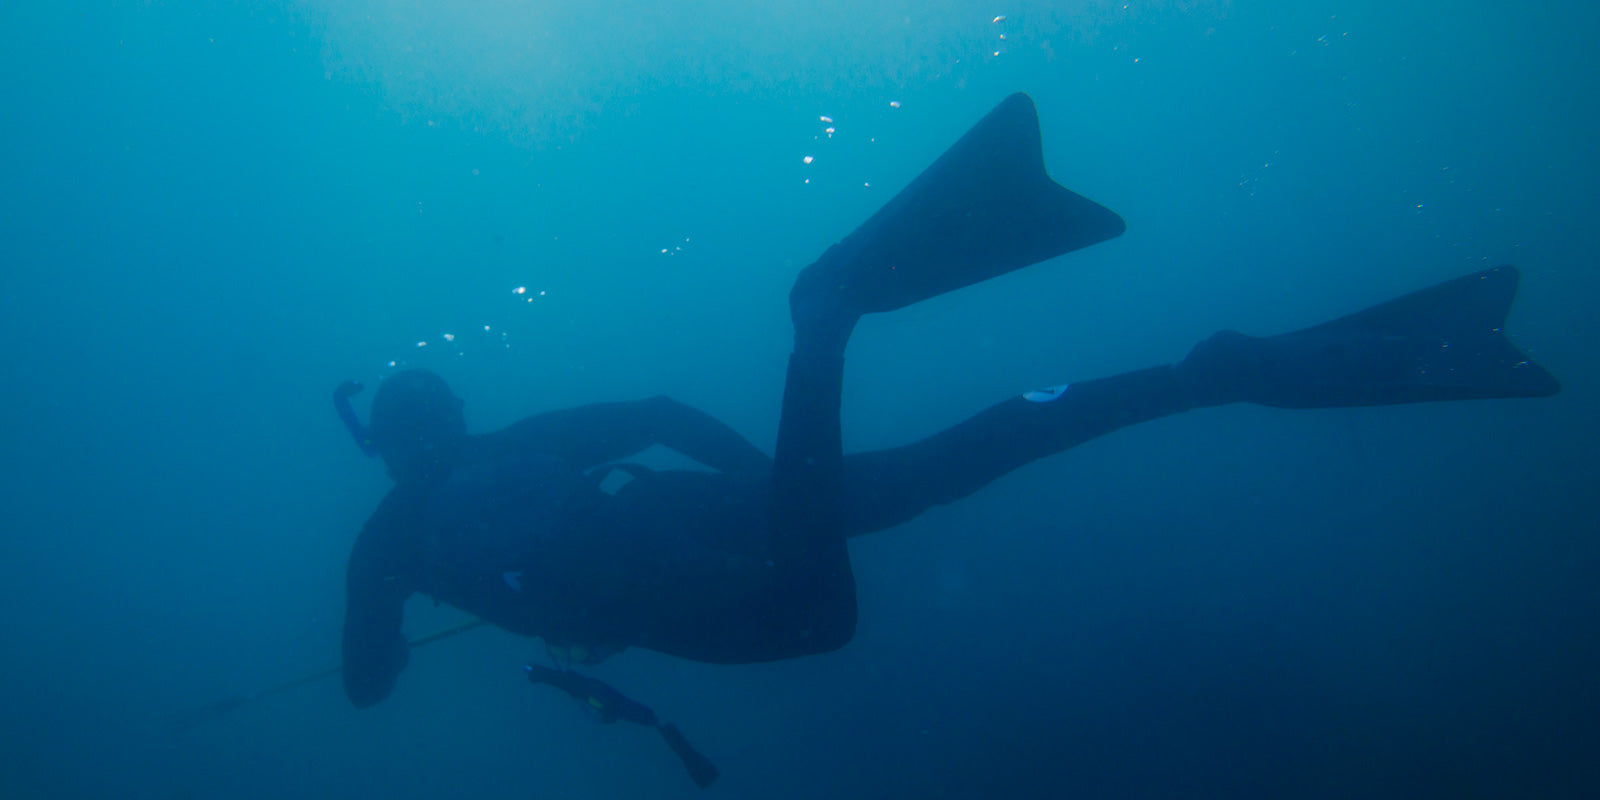 Spearfishing diver